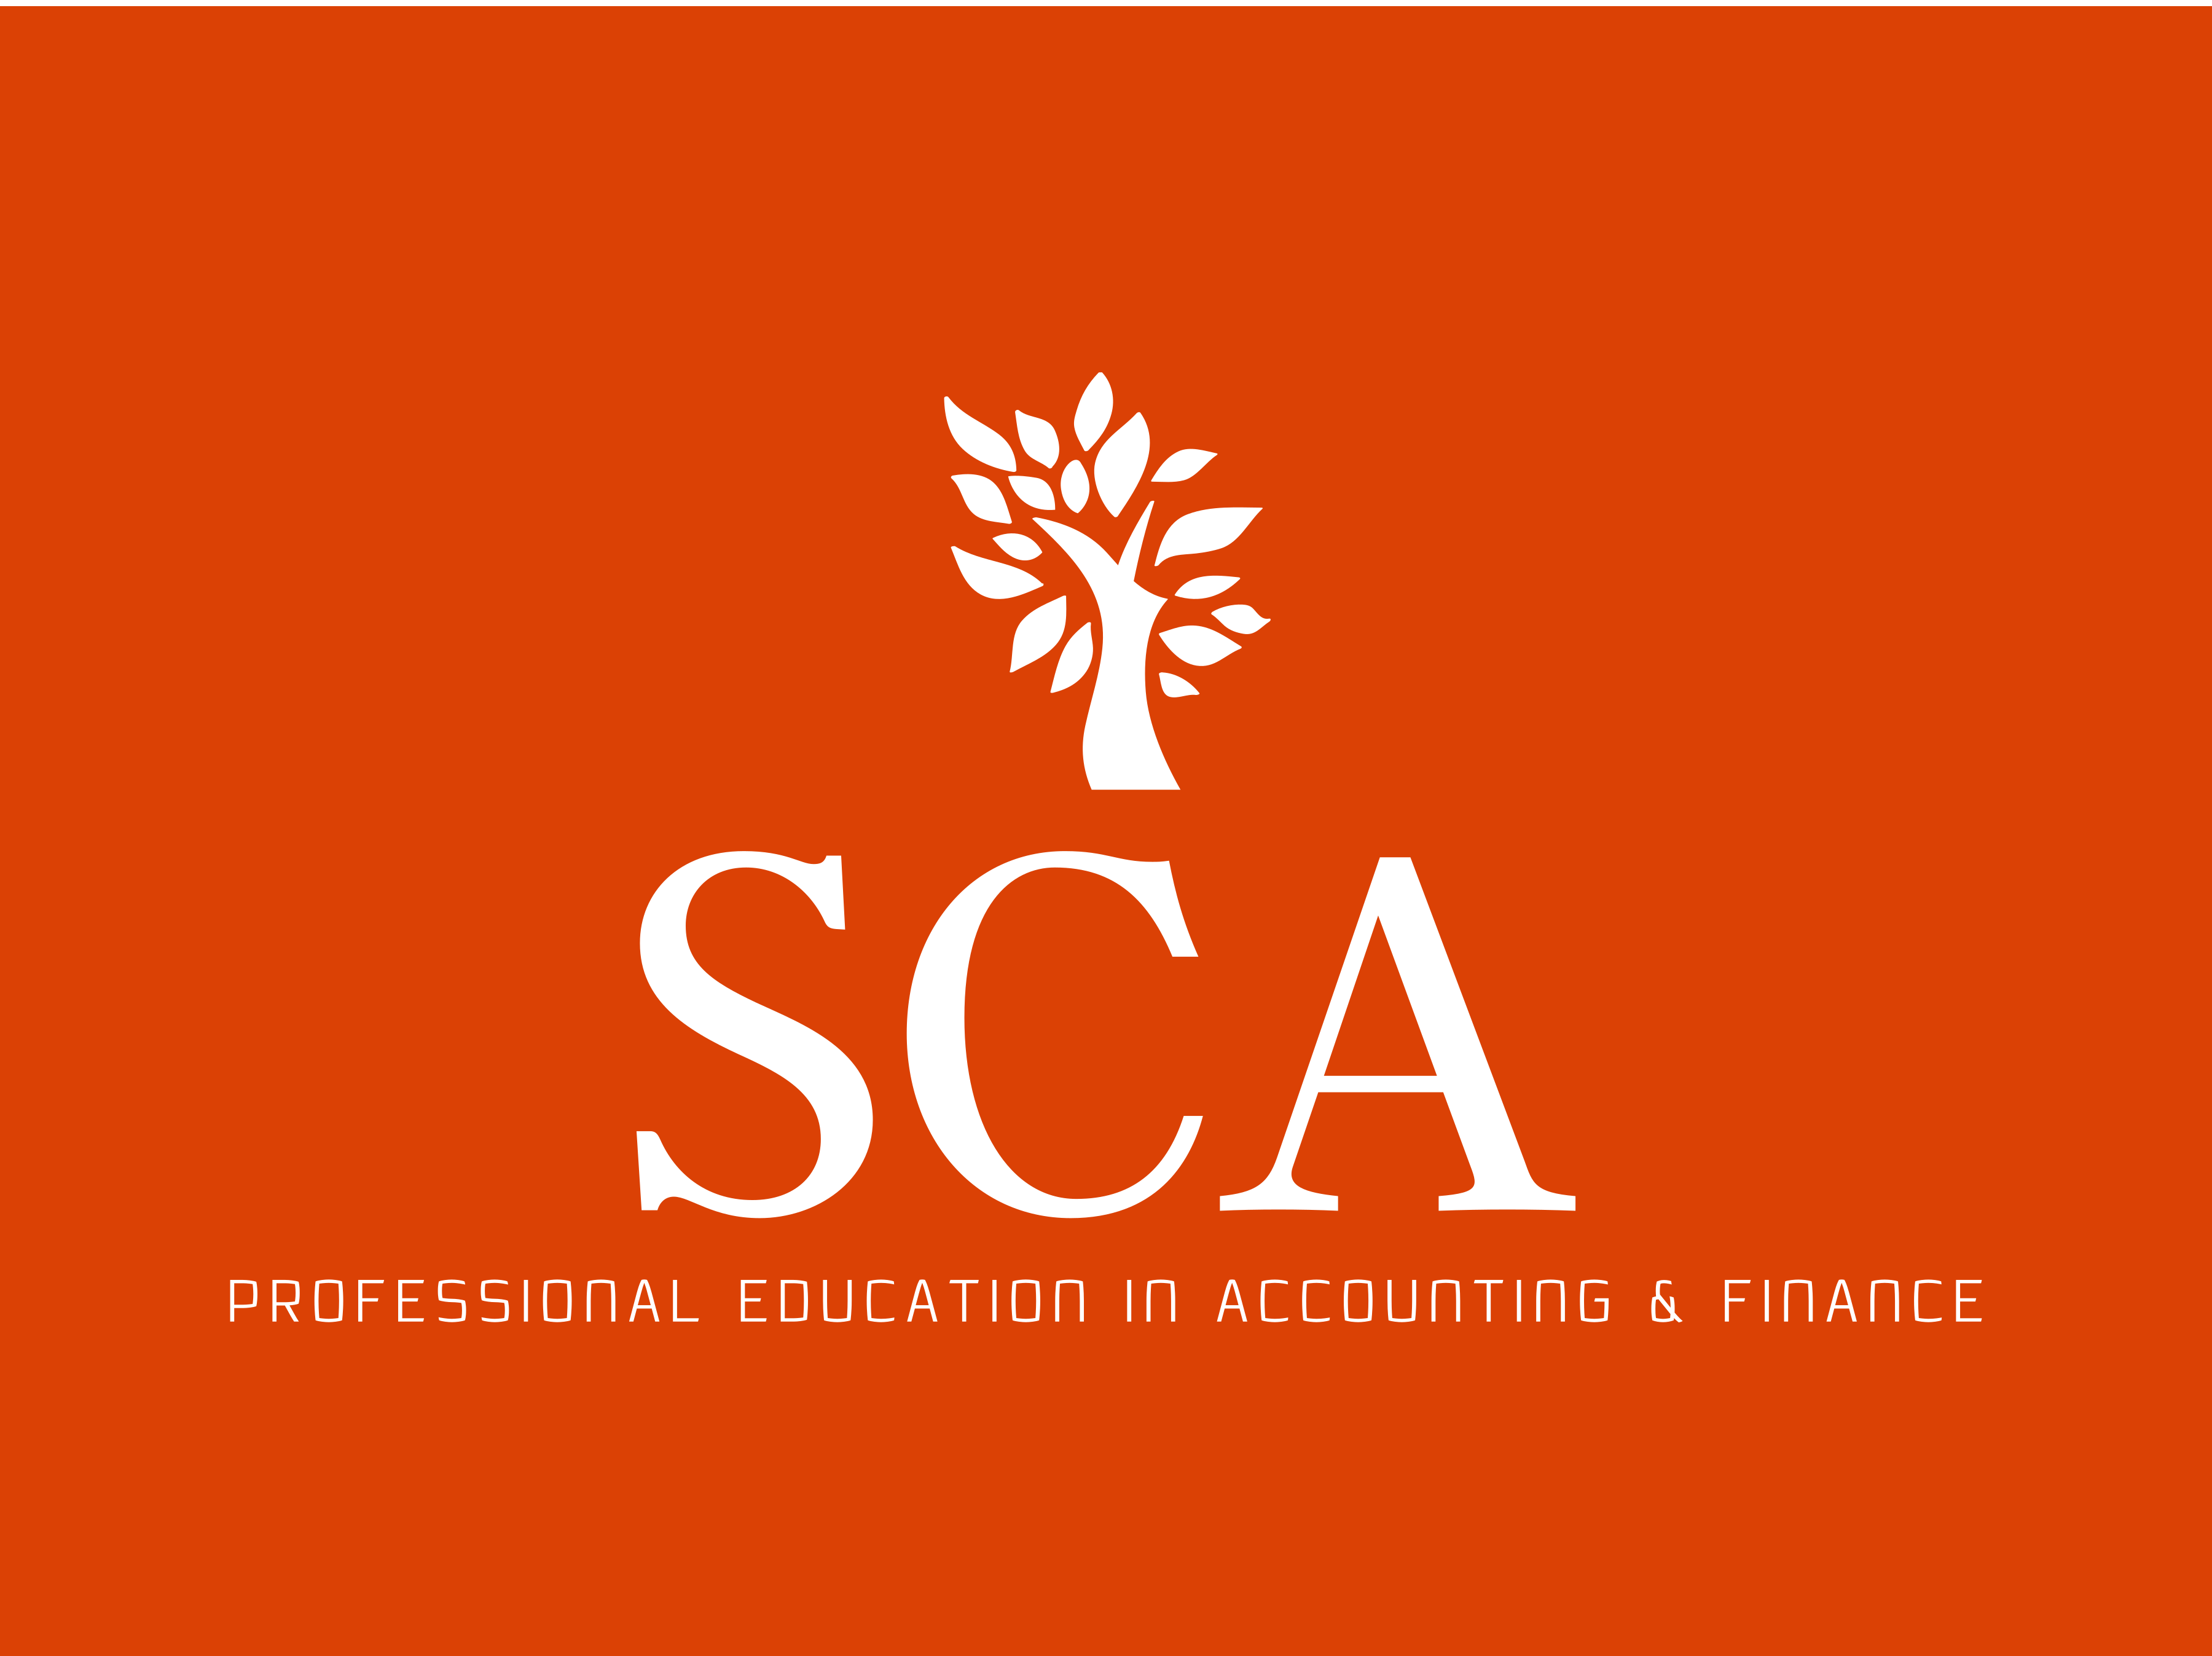 Suriname College of Accountancy